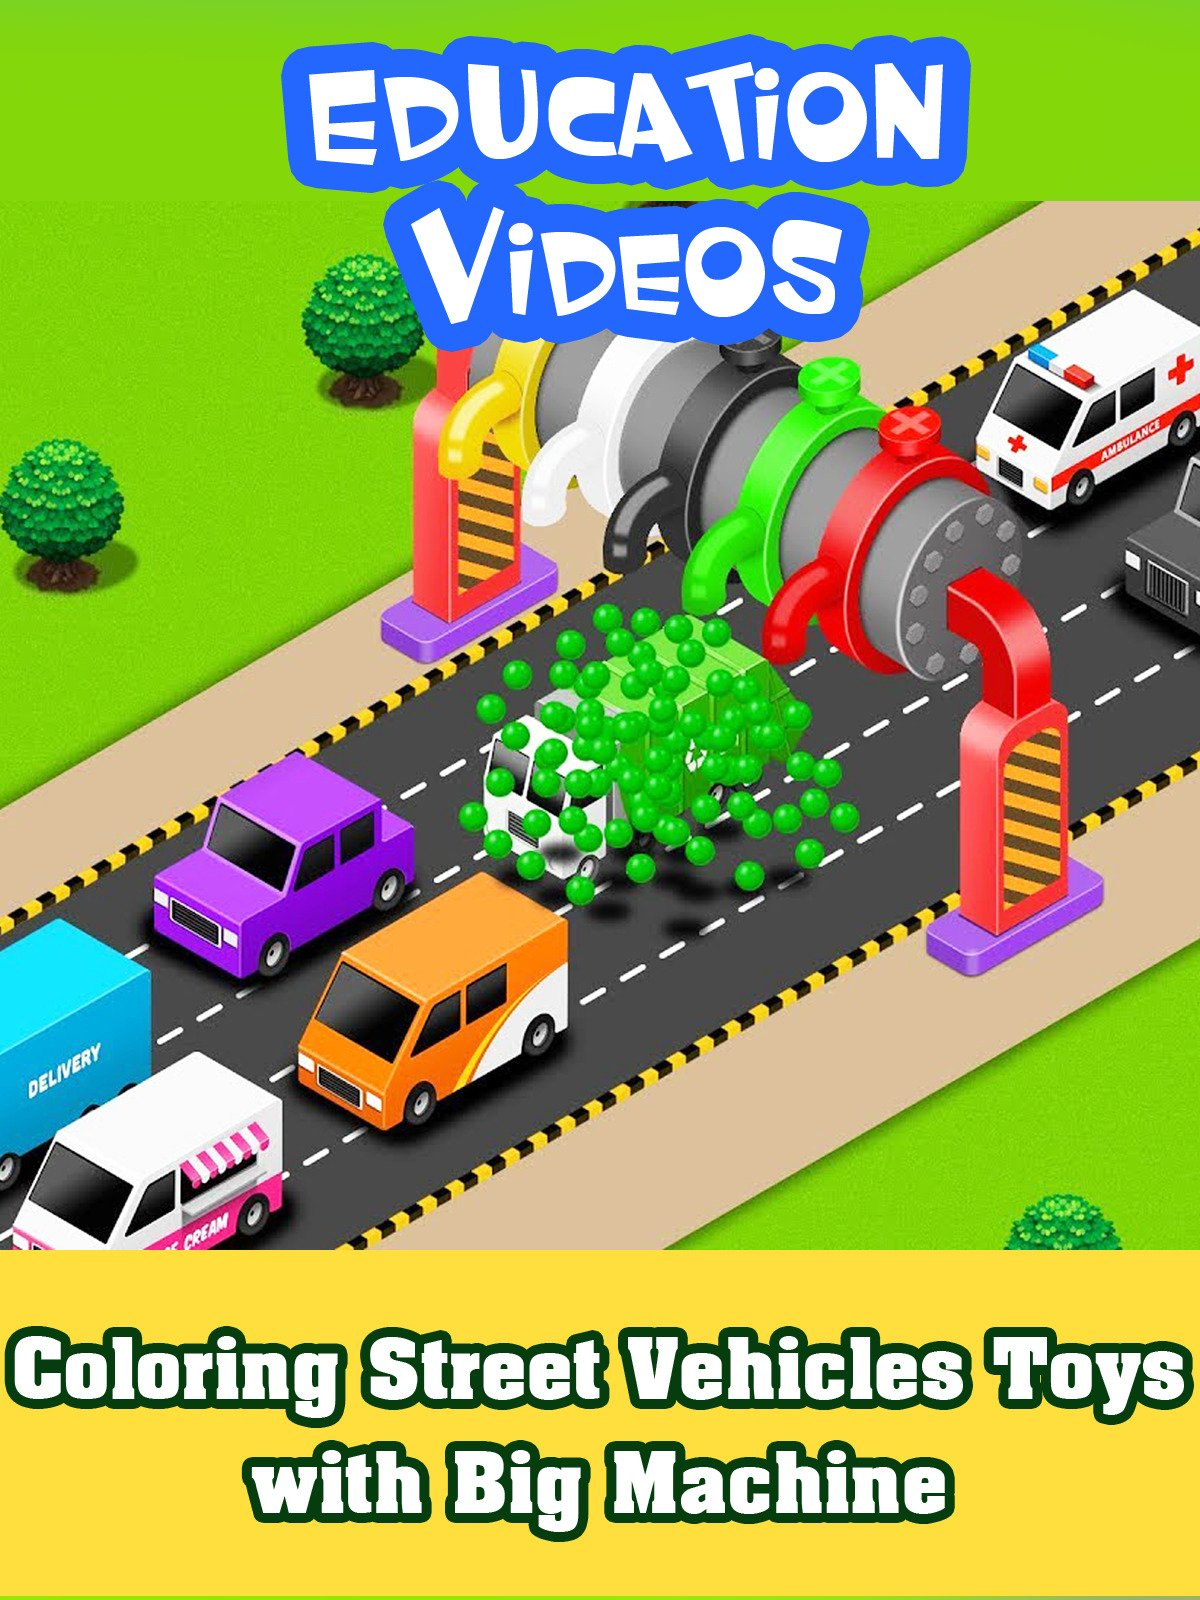 Coloring Street Vehicles Toys with Big Machine